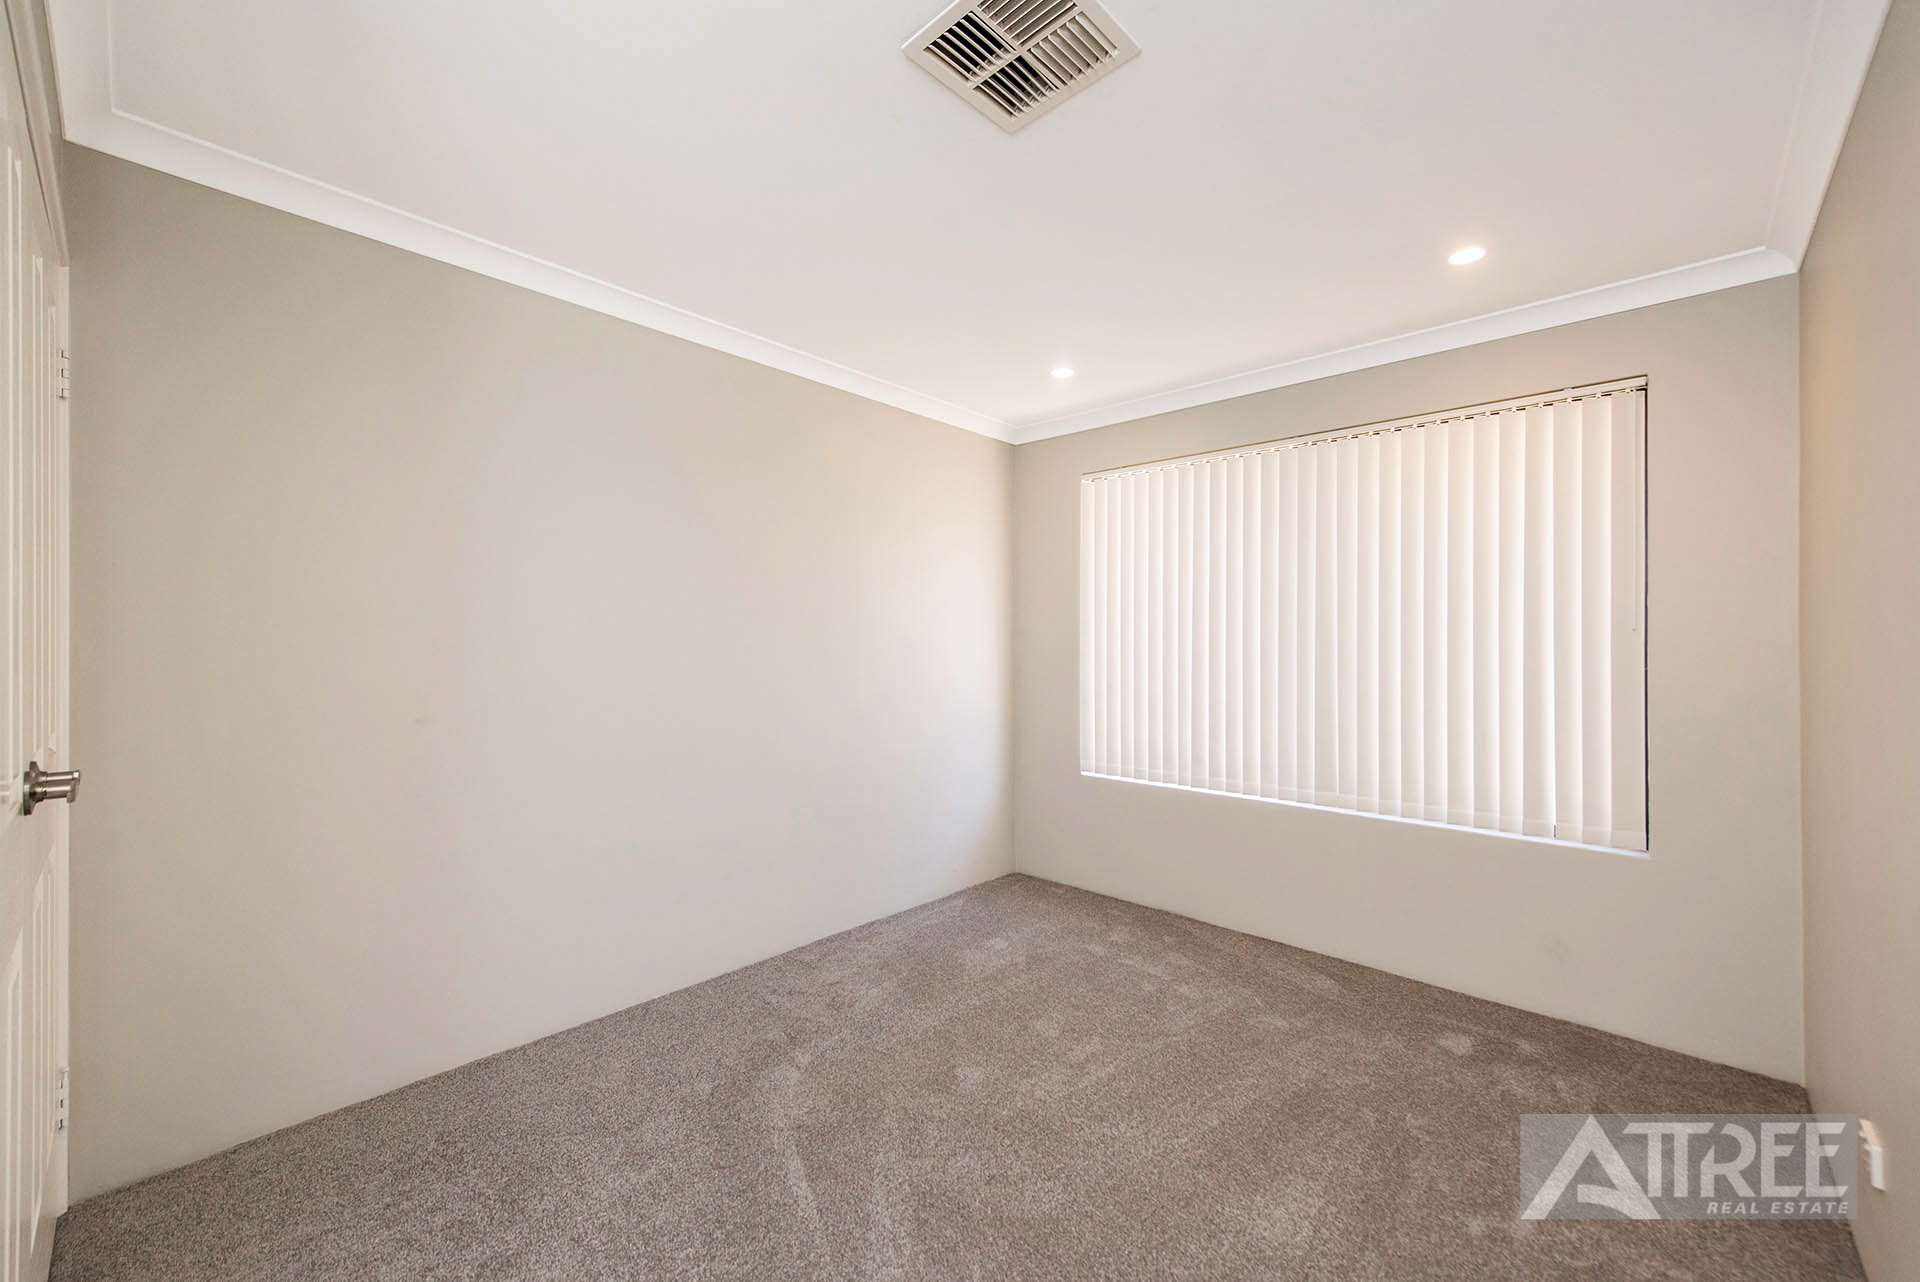 Property for sale in CANNING VALE, 7 Blarney Place : Attree Real Estate